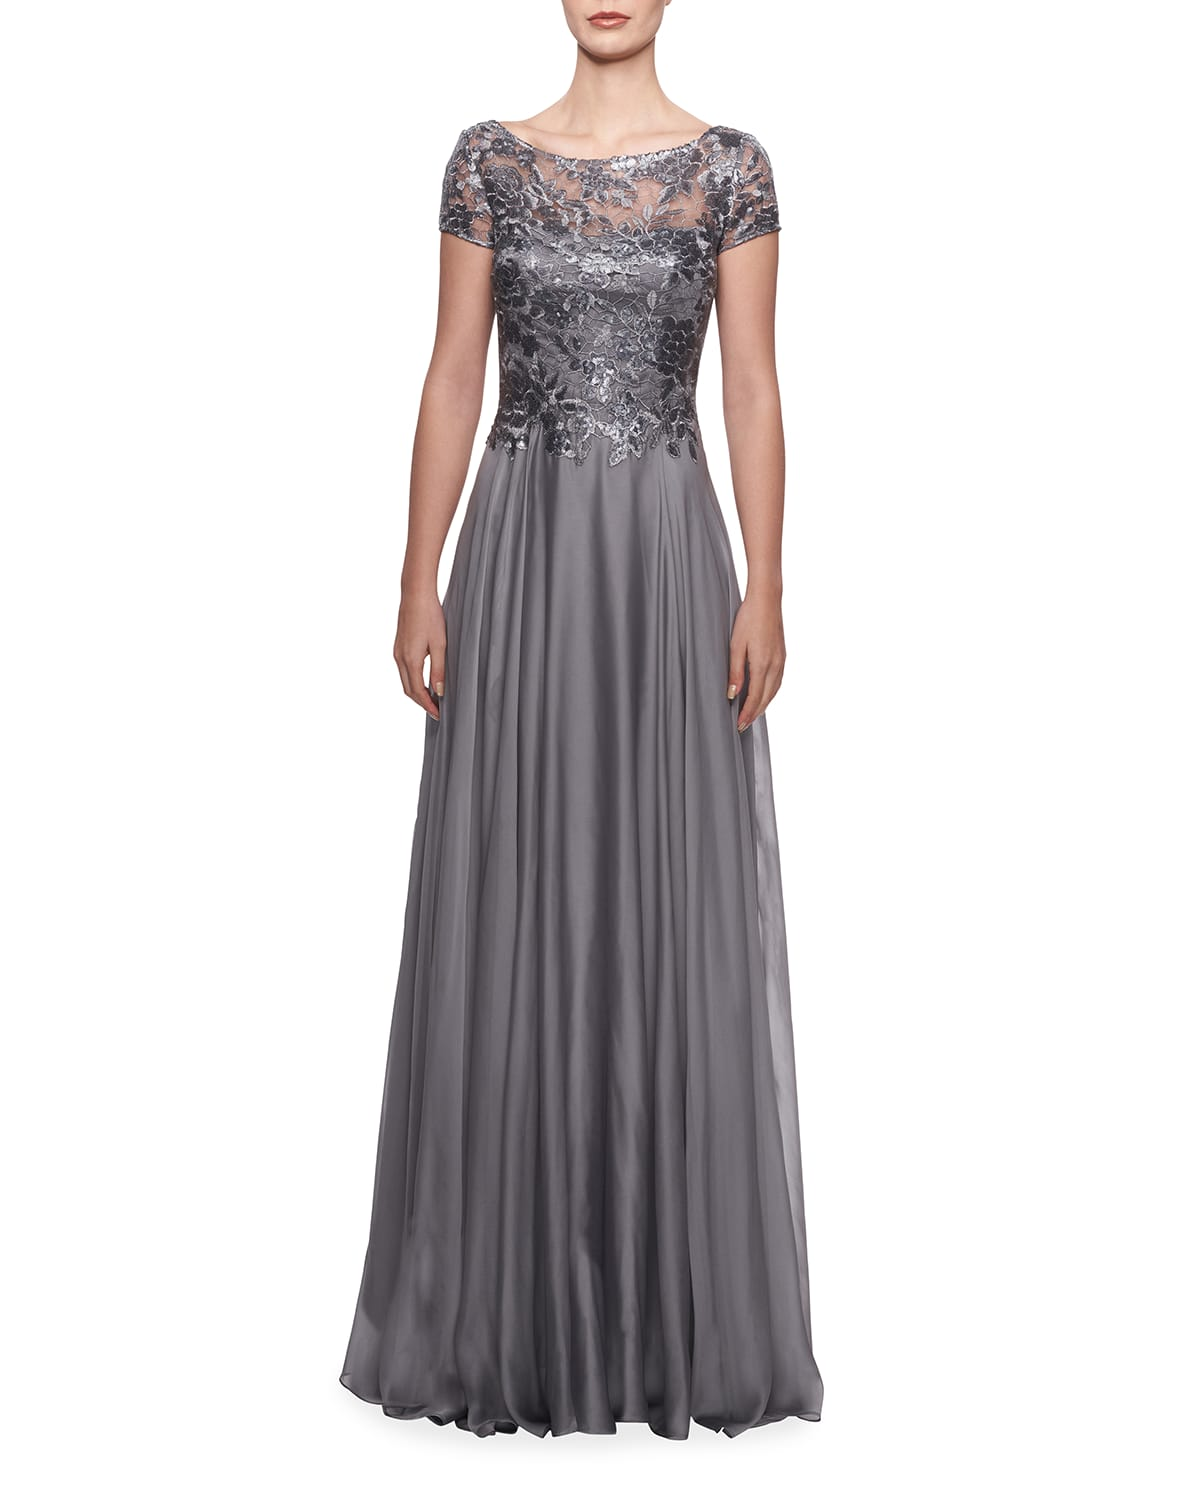 Cap-Sleeve Chiffon Gown with Metallic Lace Bodice